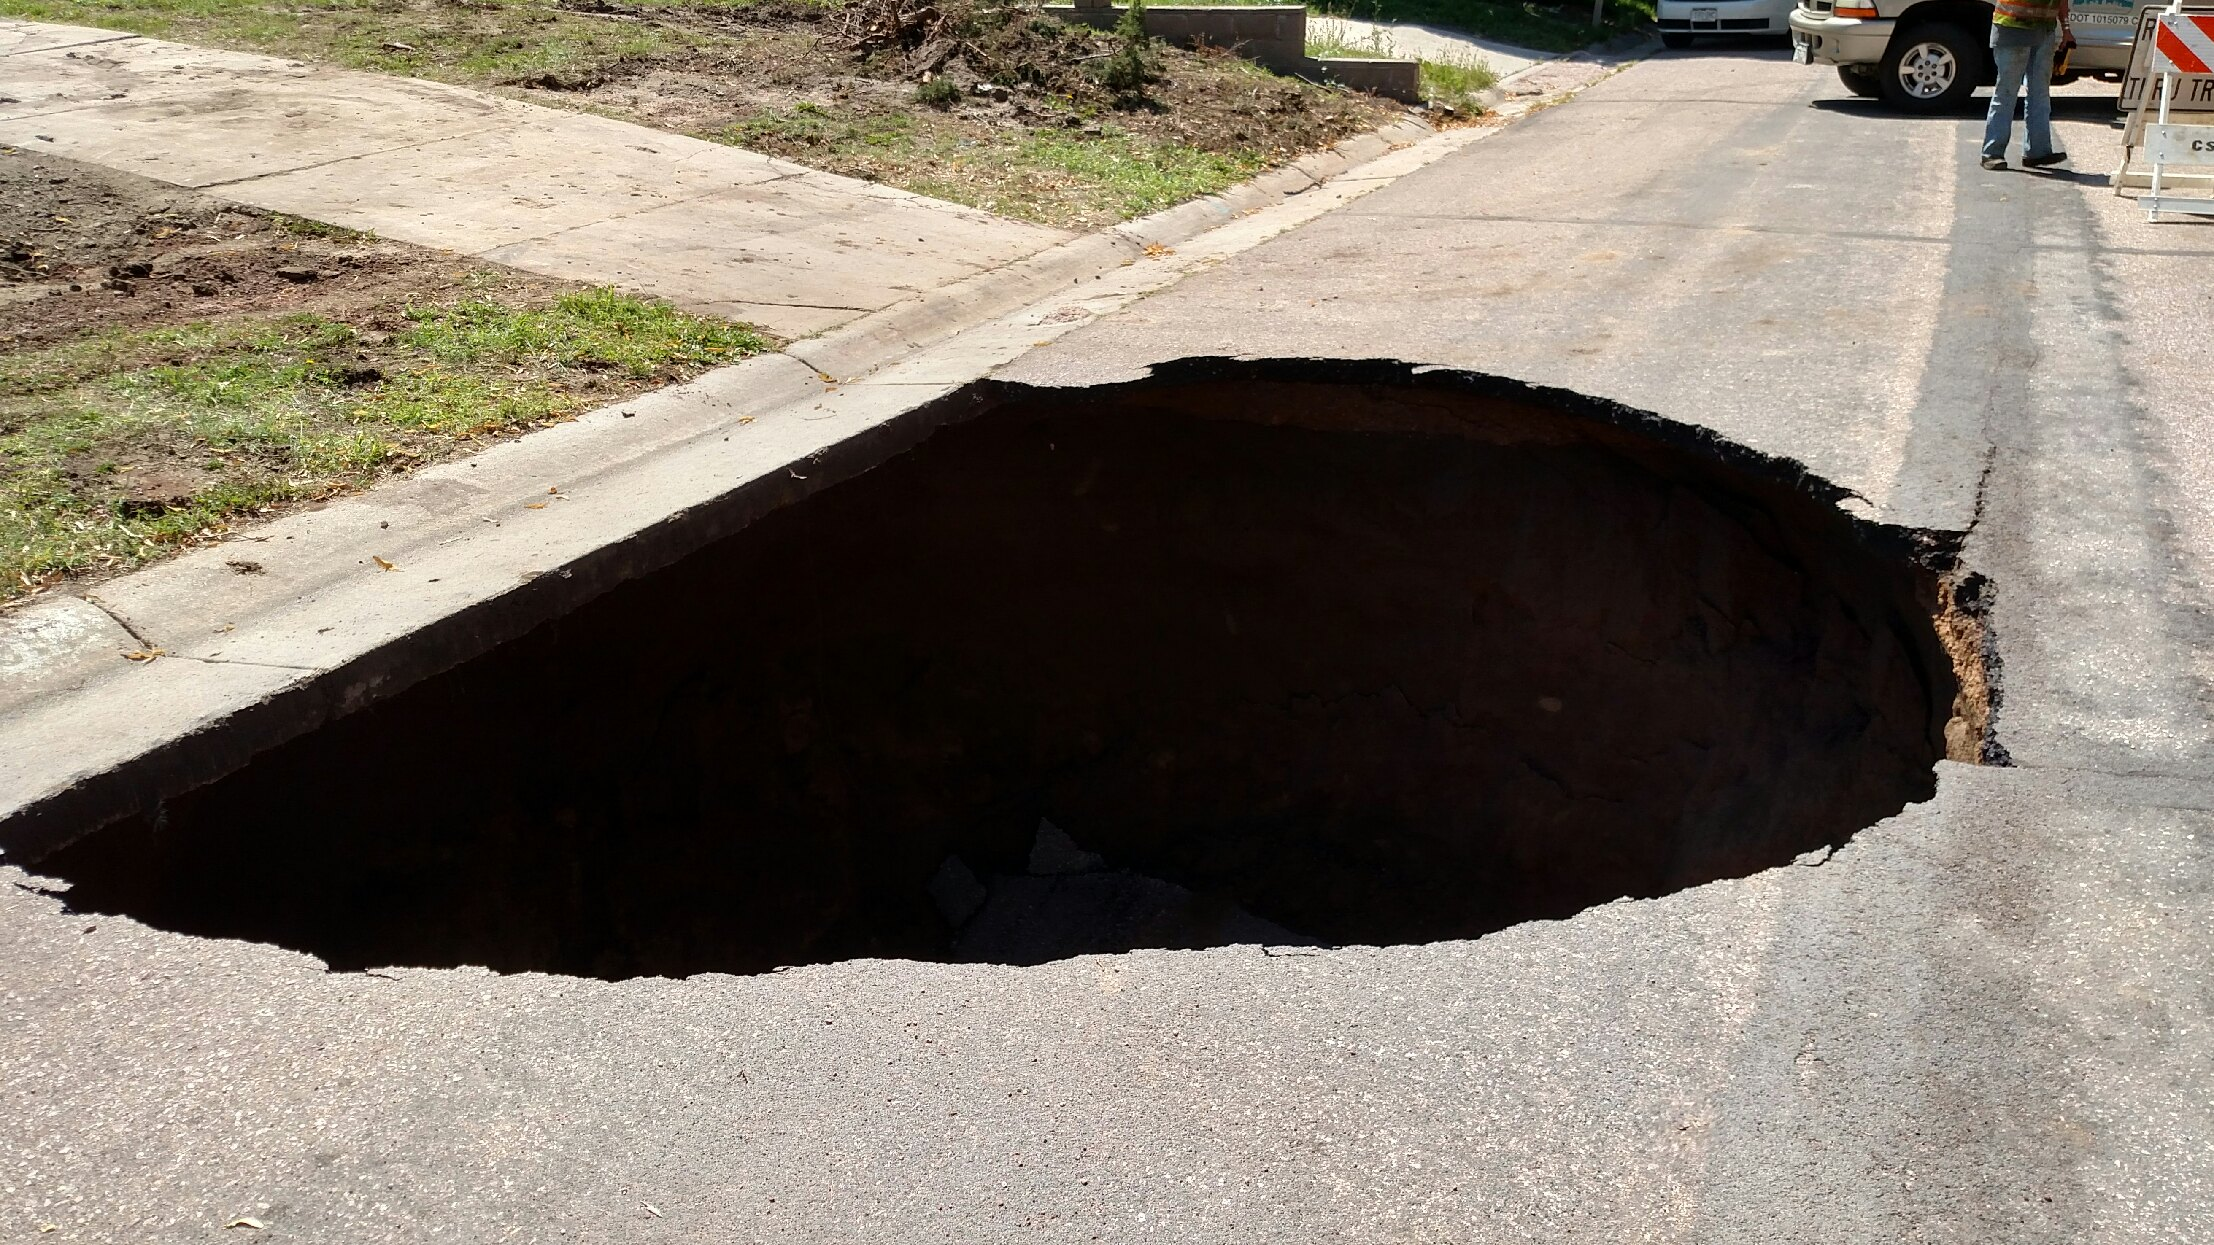 photo of large sinkhole in the street